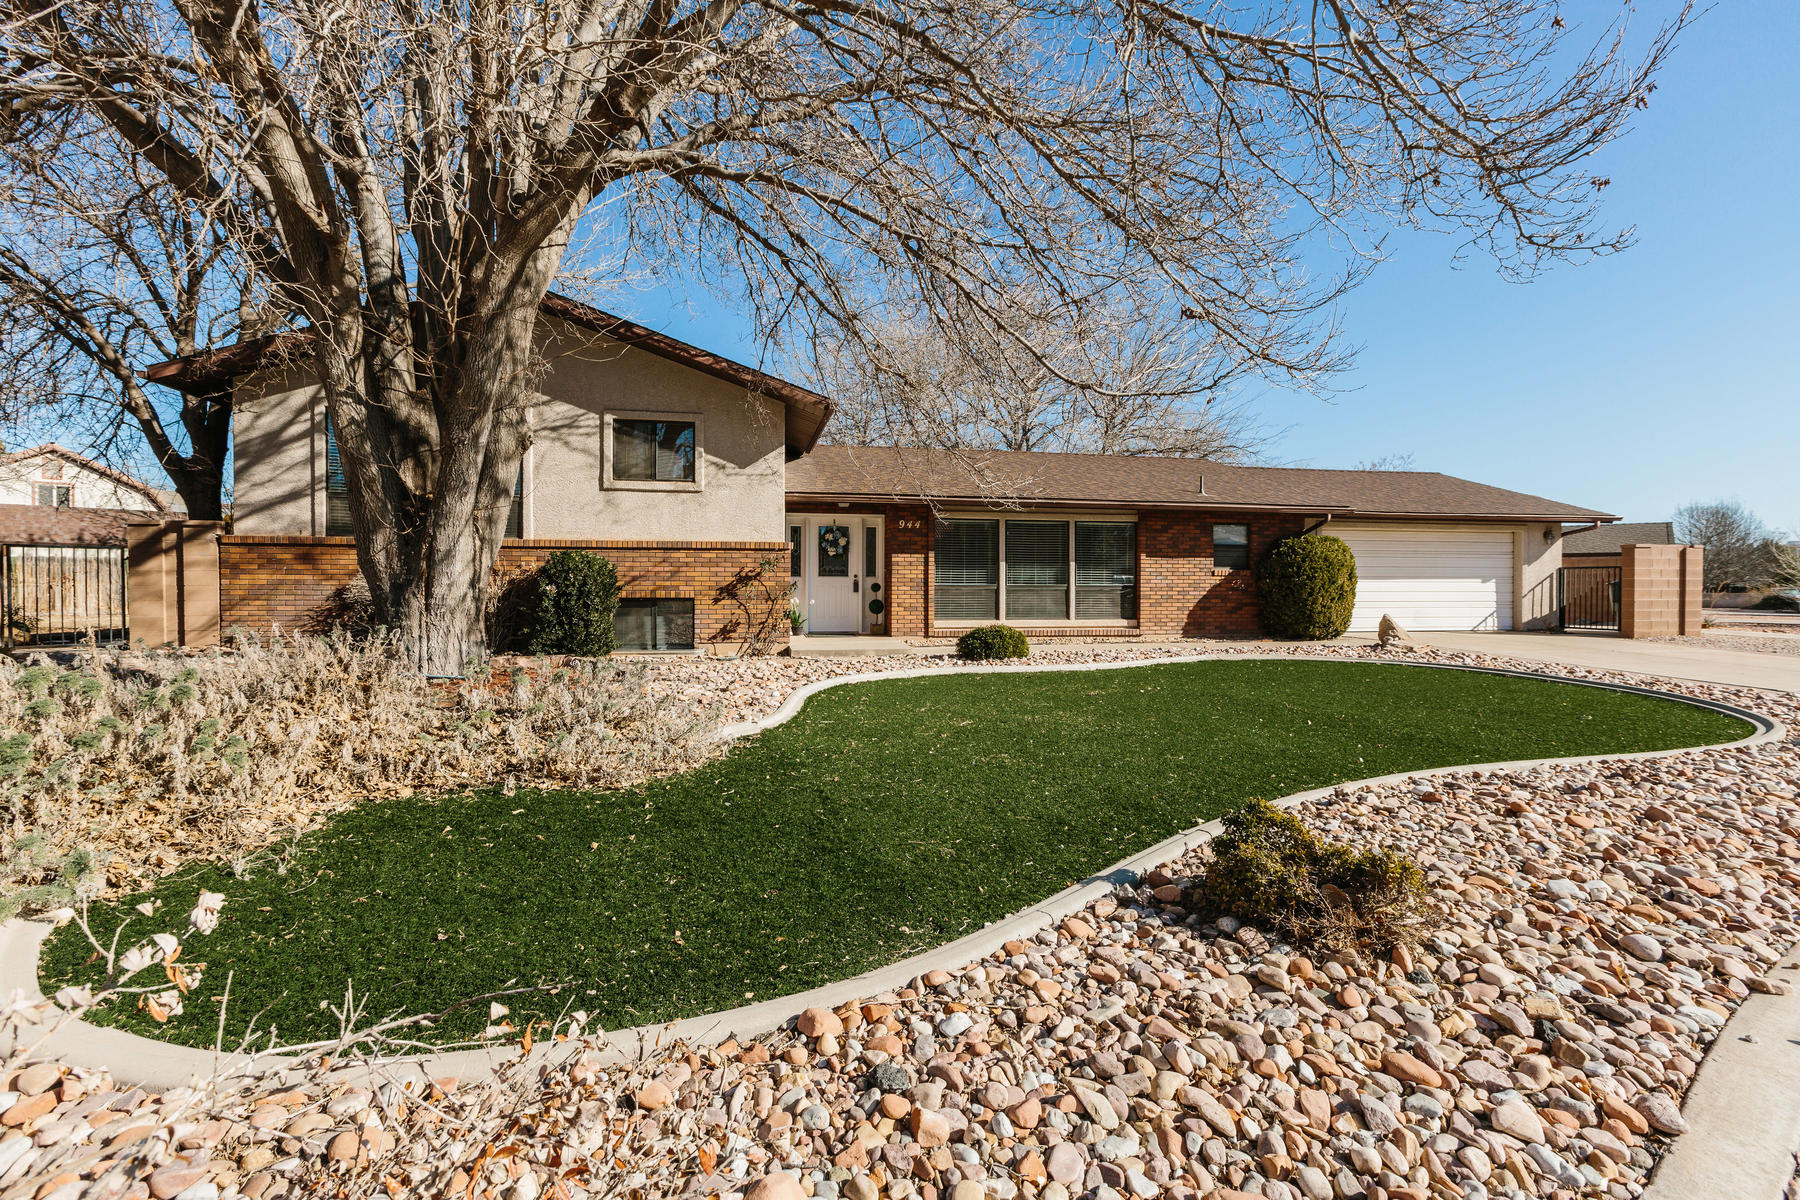 Single Family Home for Sale at Upgraded Bloomington Gardens 6bed/3b 944 Gardenia St. George, Utah 84790 United States